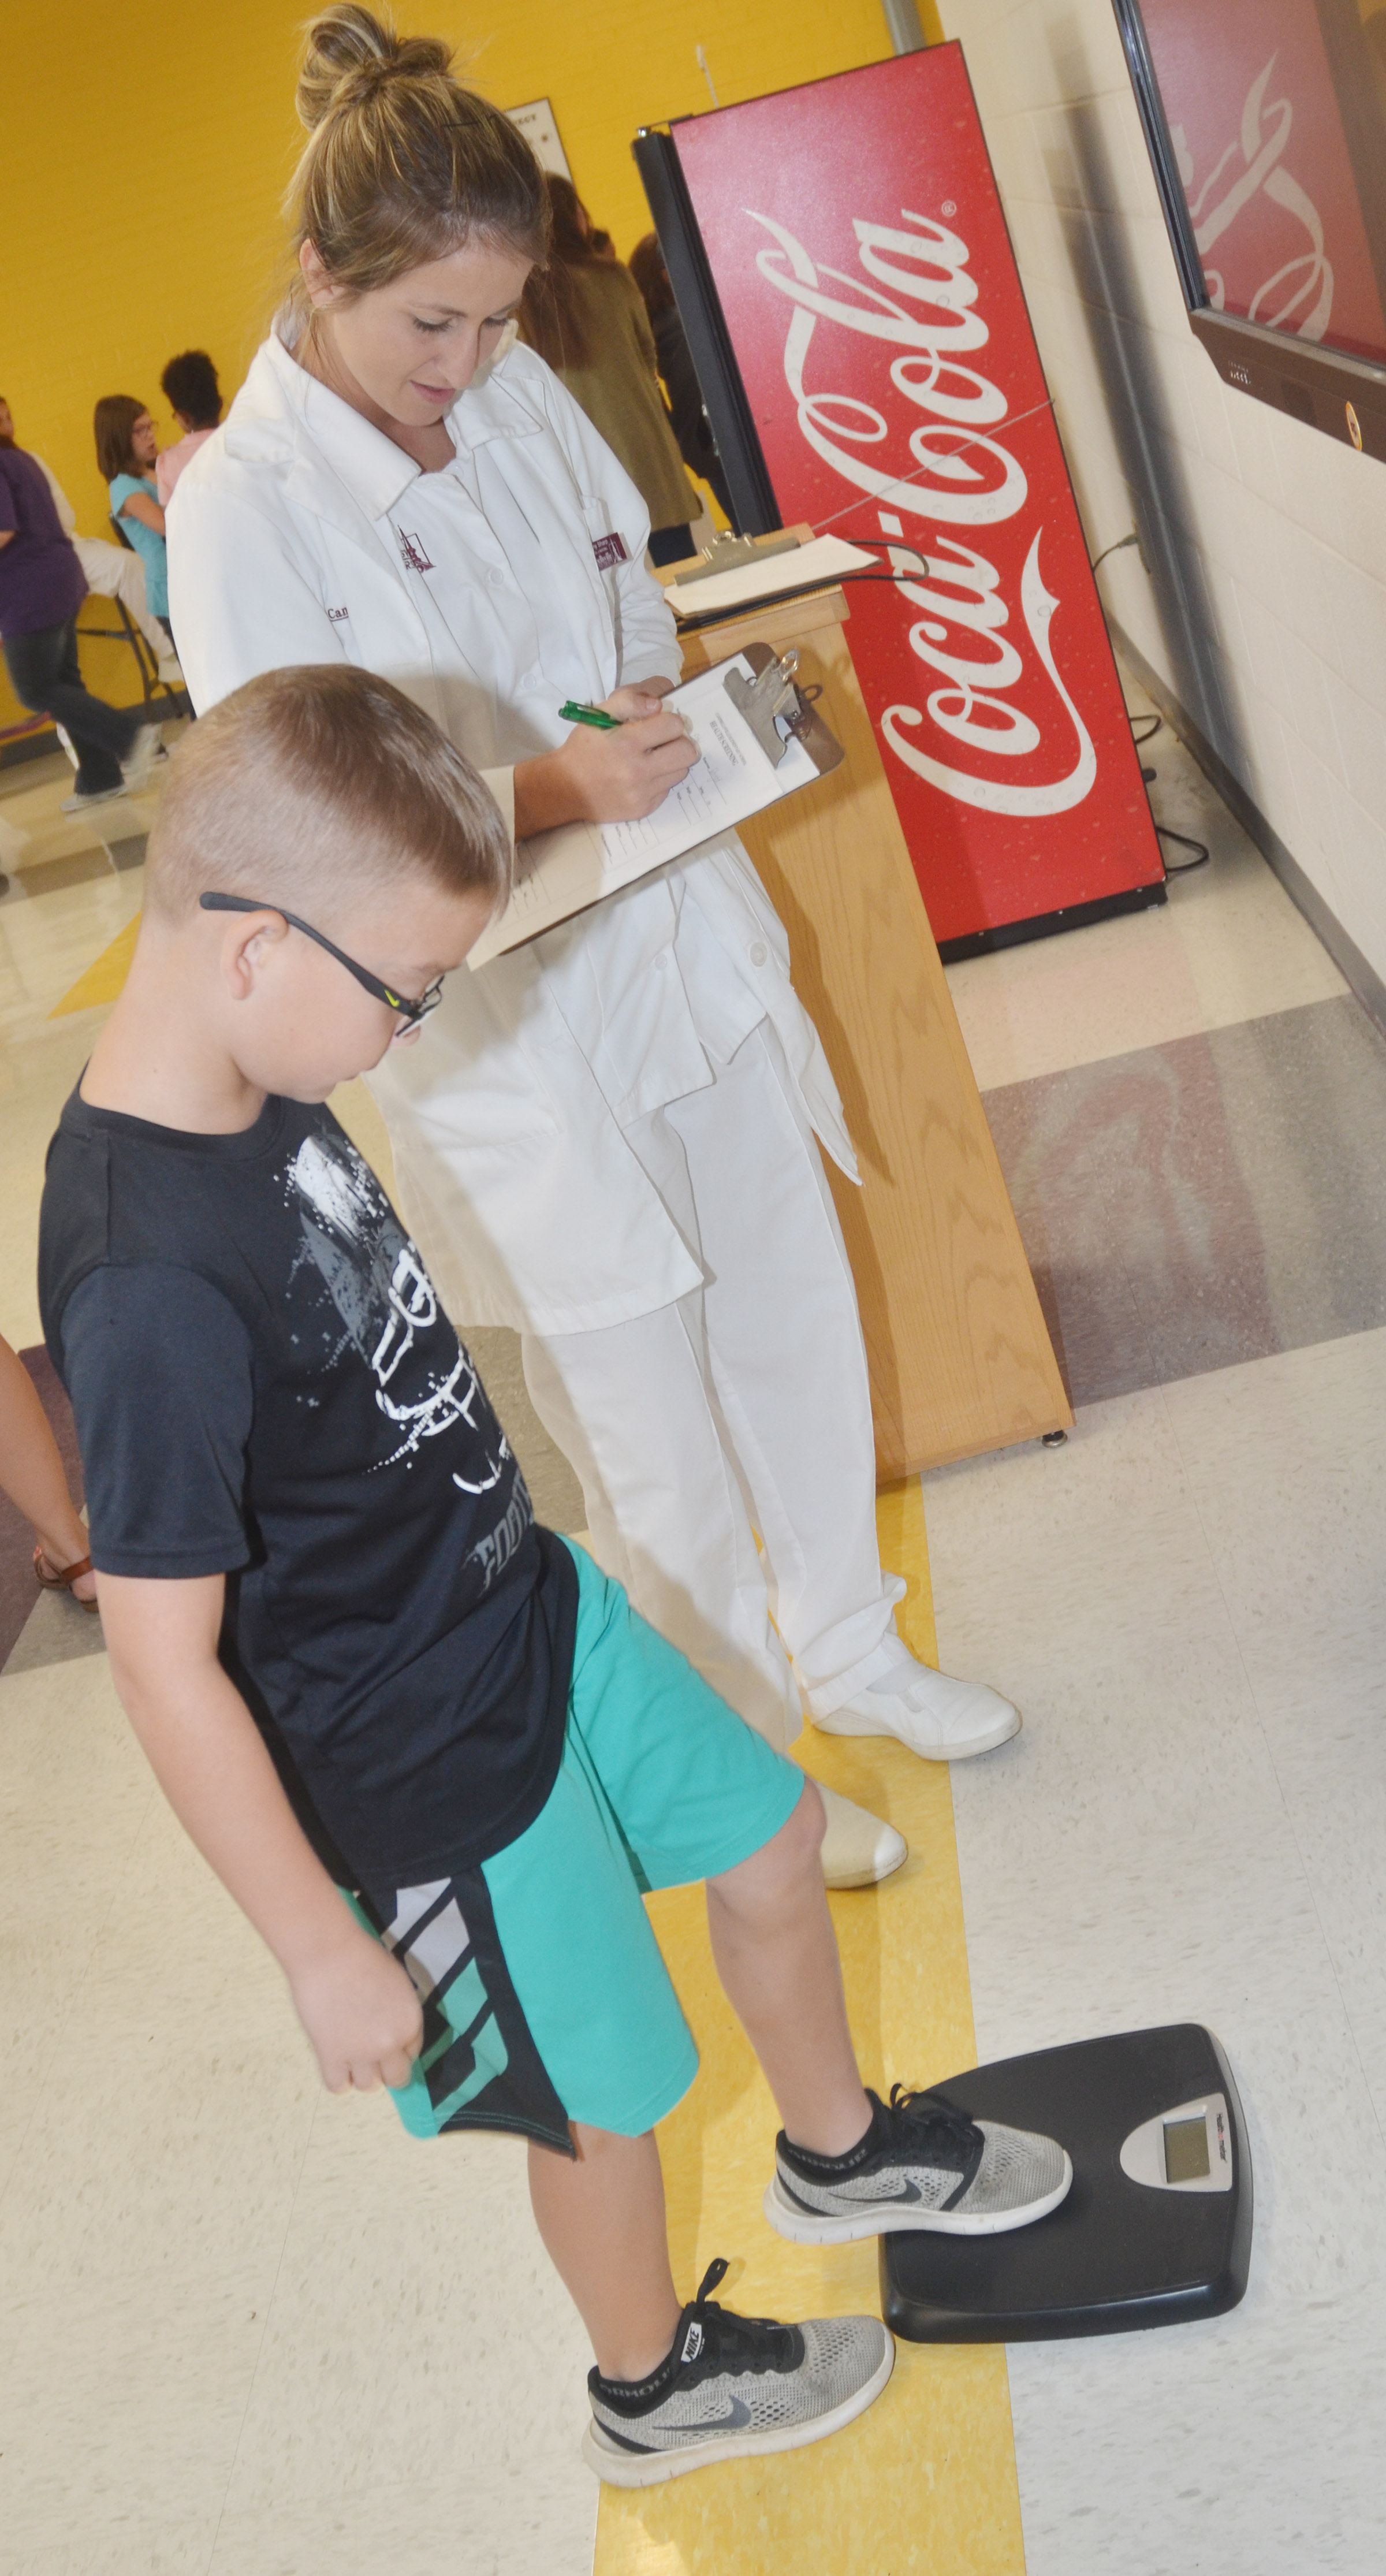 CES fourth-grader Cameron Estes weighs himself, with help from Campbellsville University nursing student Tiffany Sharp.